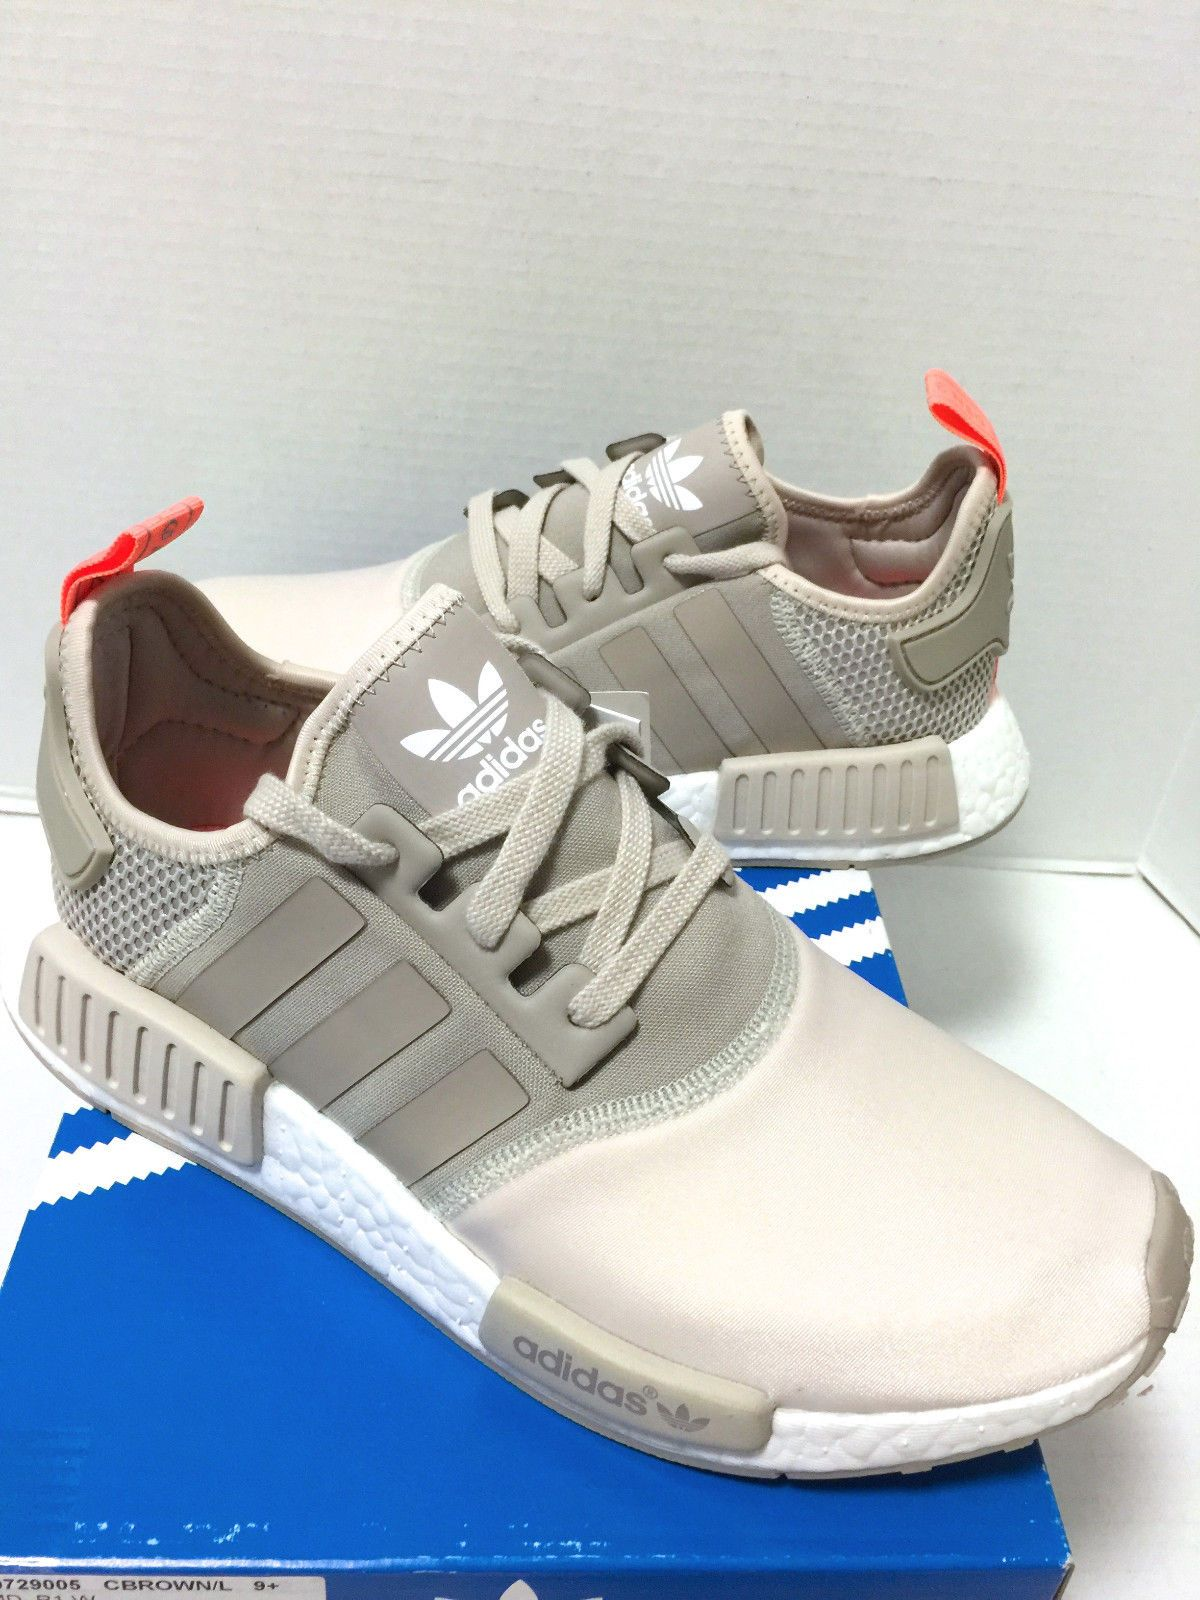 e7b16f7bd1aef New Adidas NMD Runner R1 Gold Nude Mesh Backs Peach Tan Women size 9.5